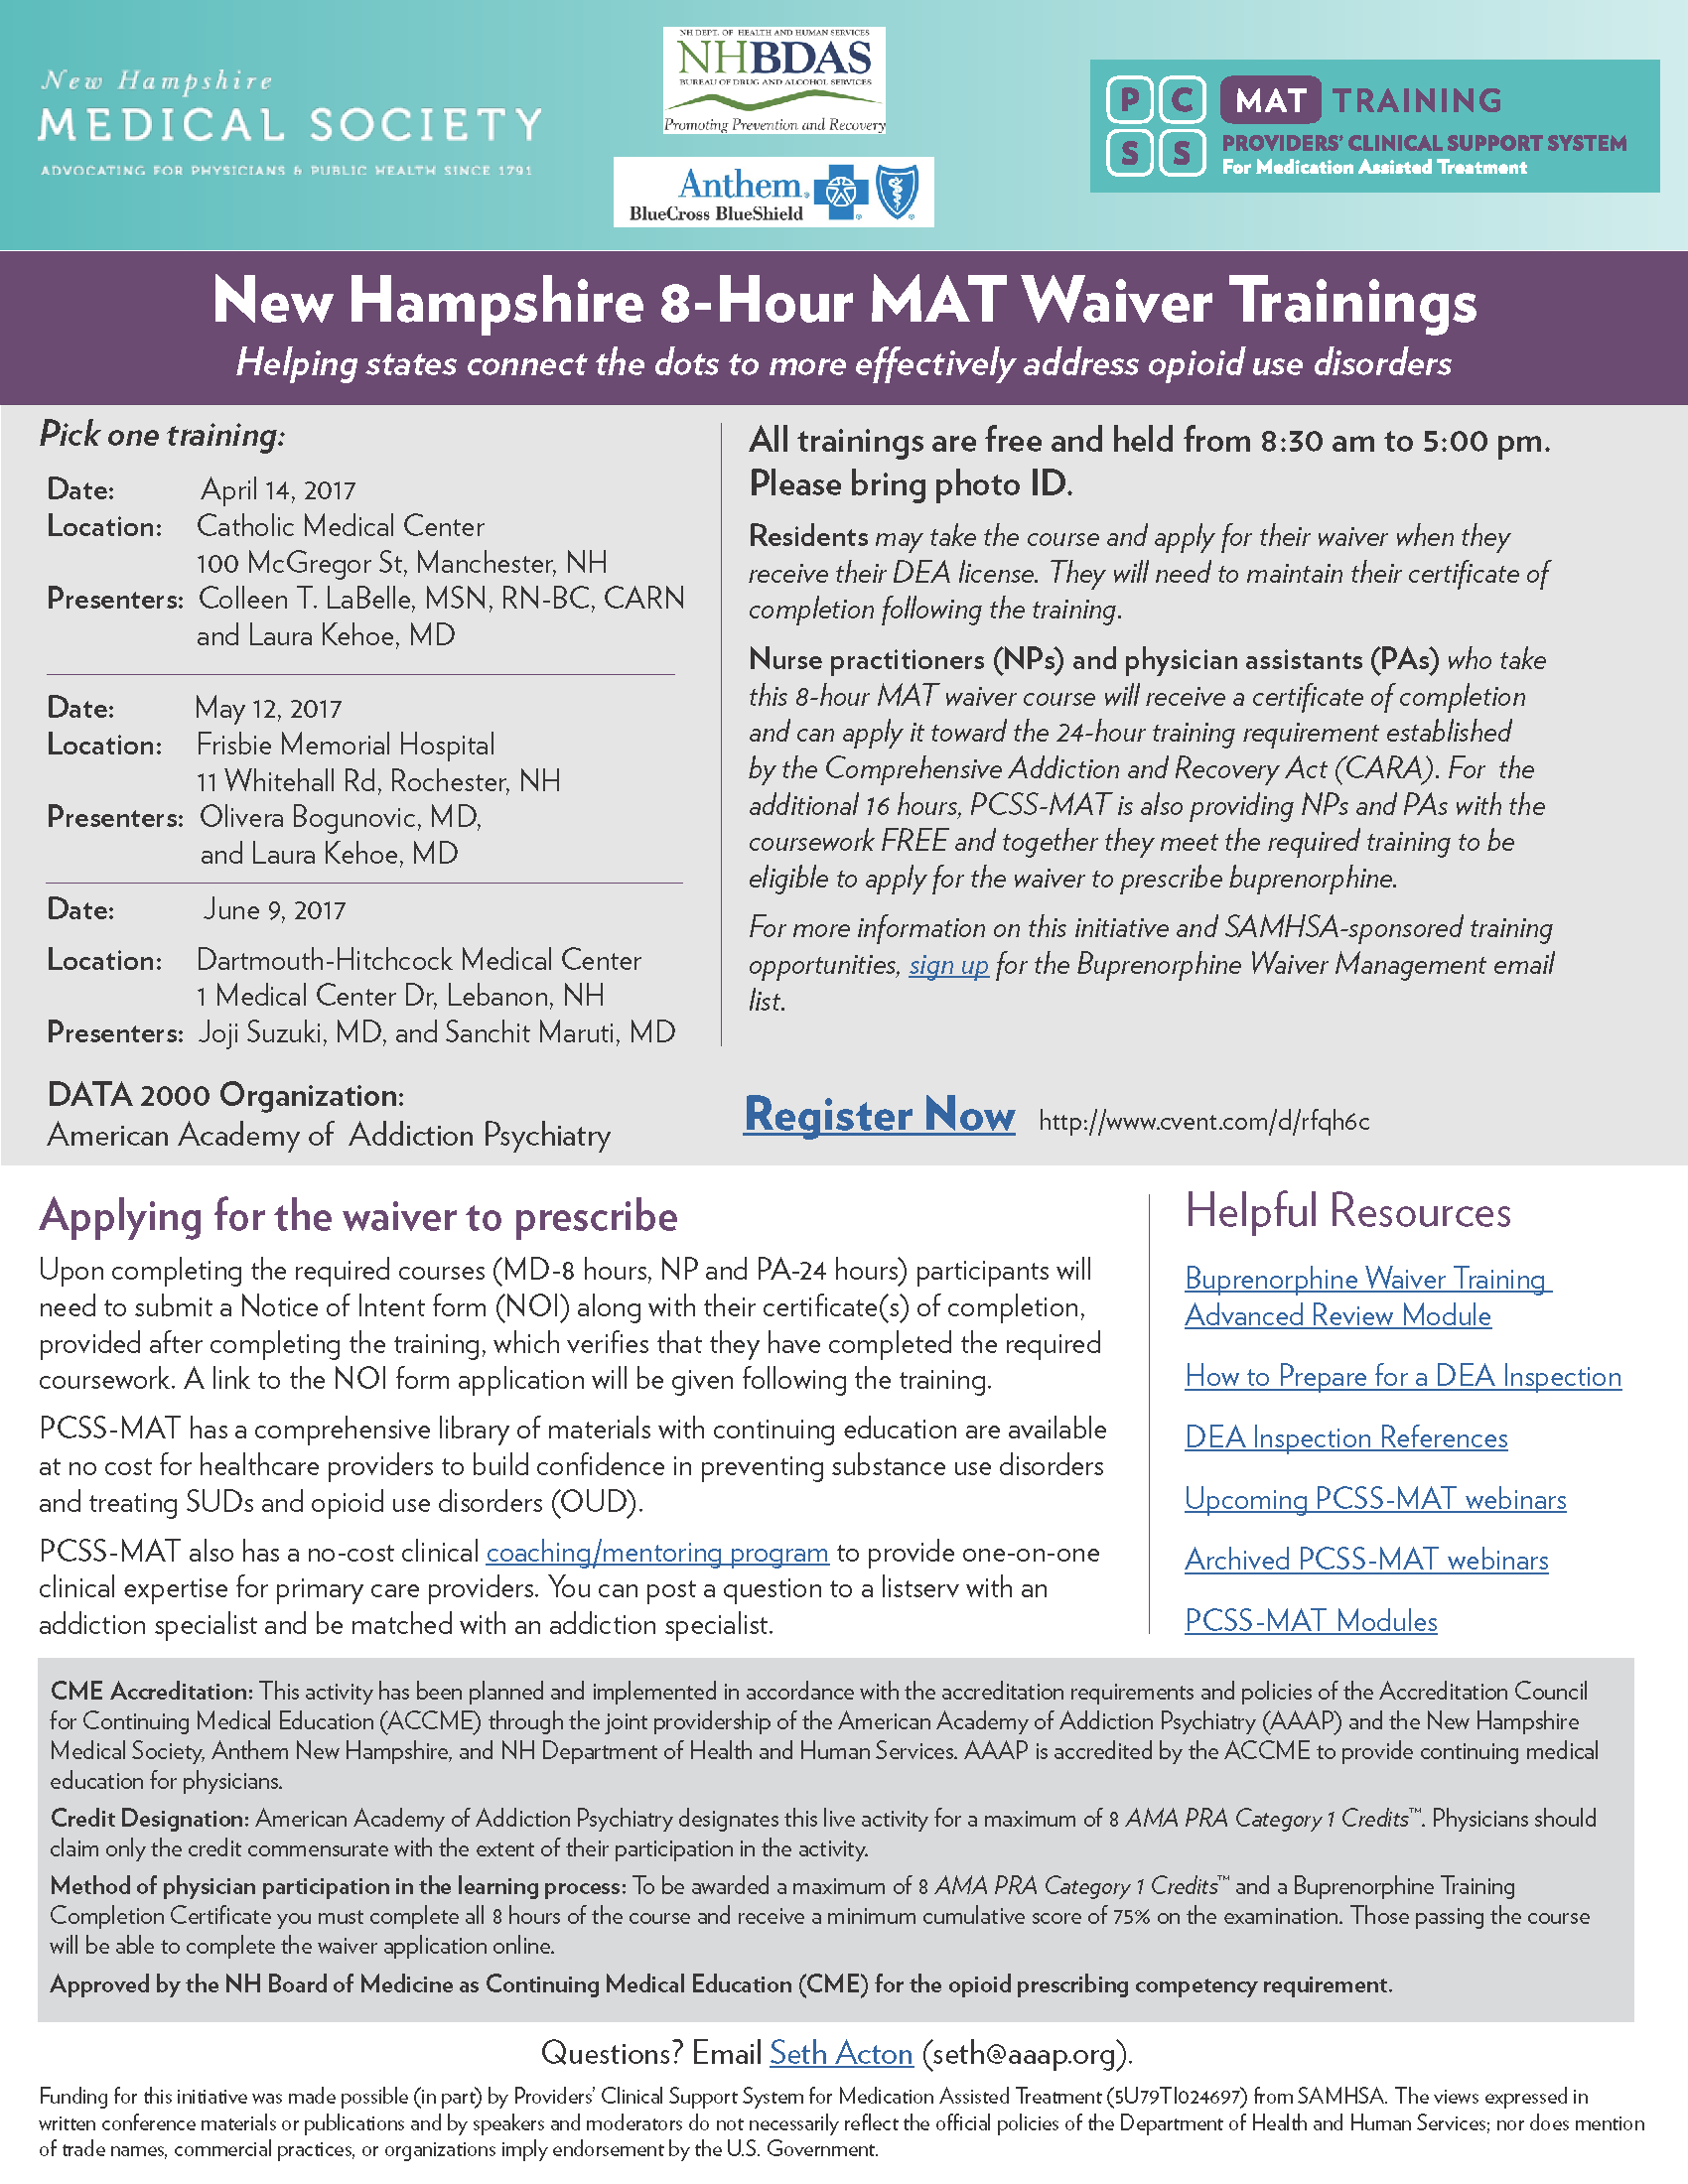 New Hampshire MAT Waiver Courses Flyer 2017